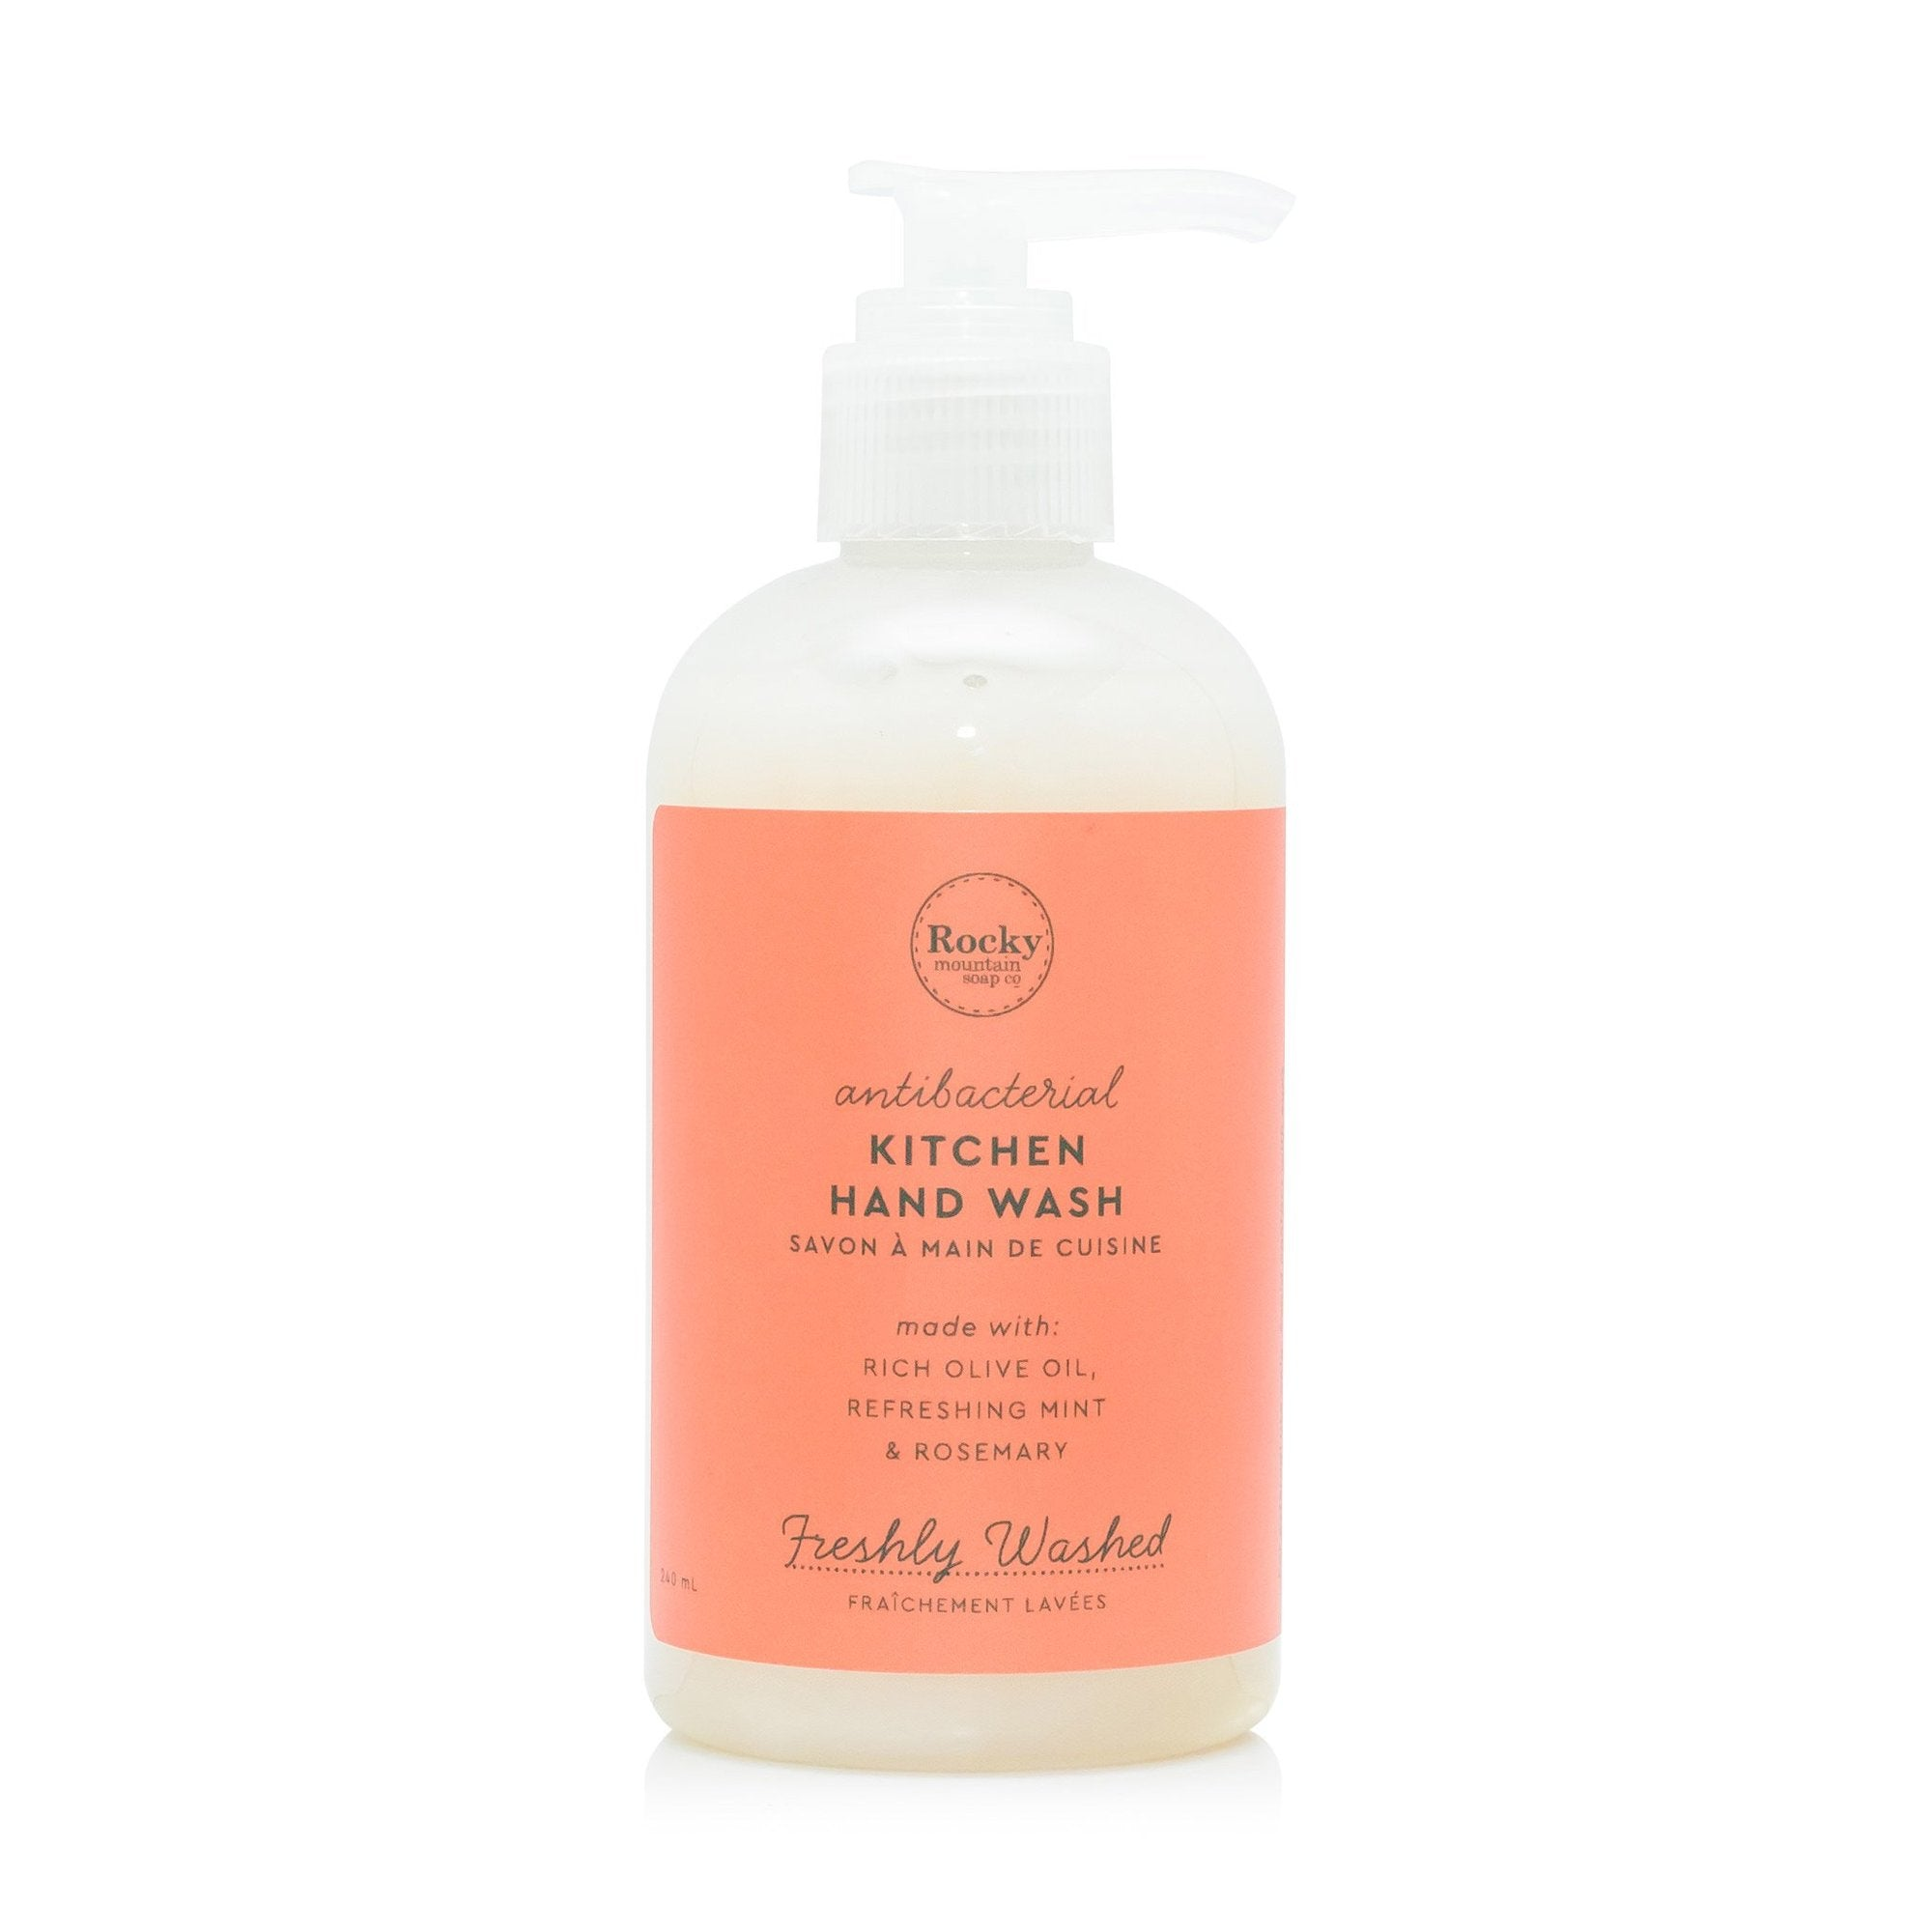 Antibacterial Kitchen Hand Wash - Cocoa Spa Boutique